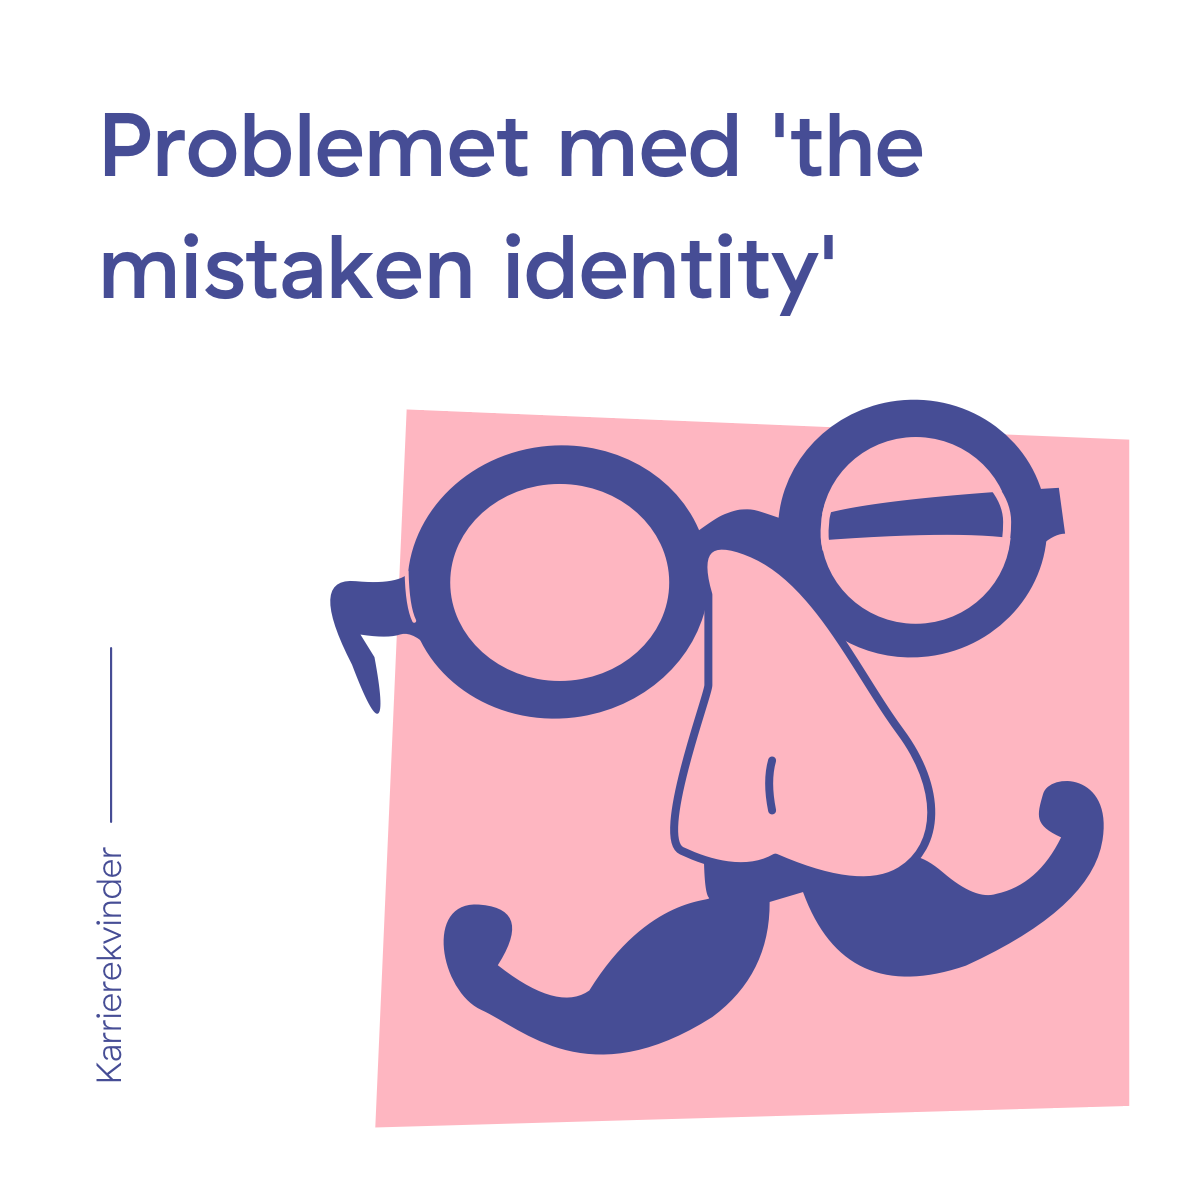 Episode 6 – Problemet med the mistaken identity